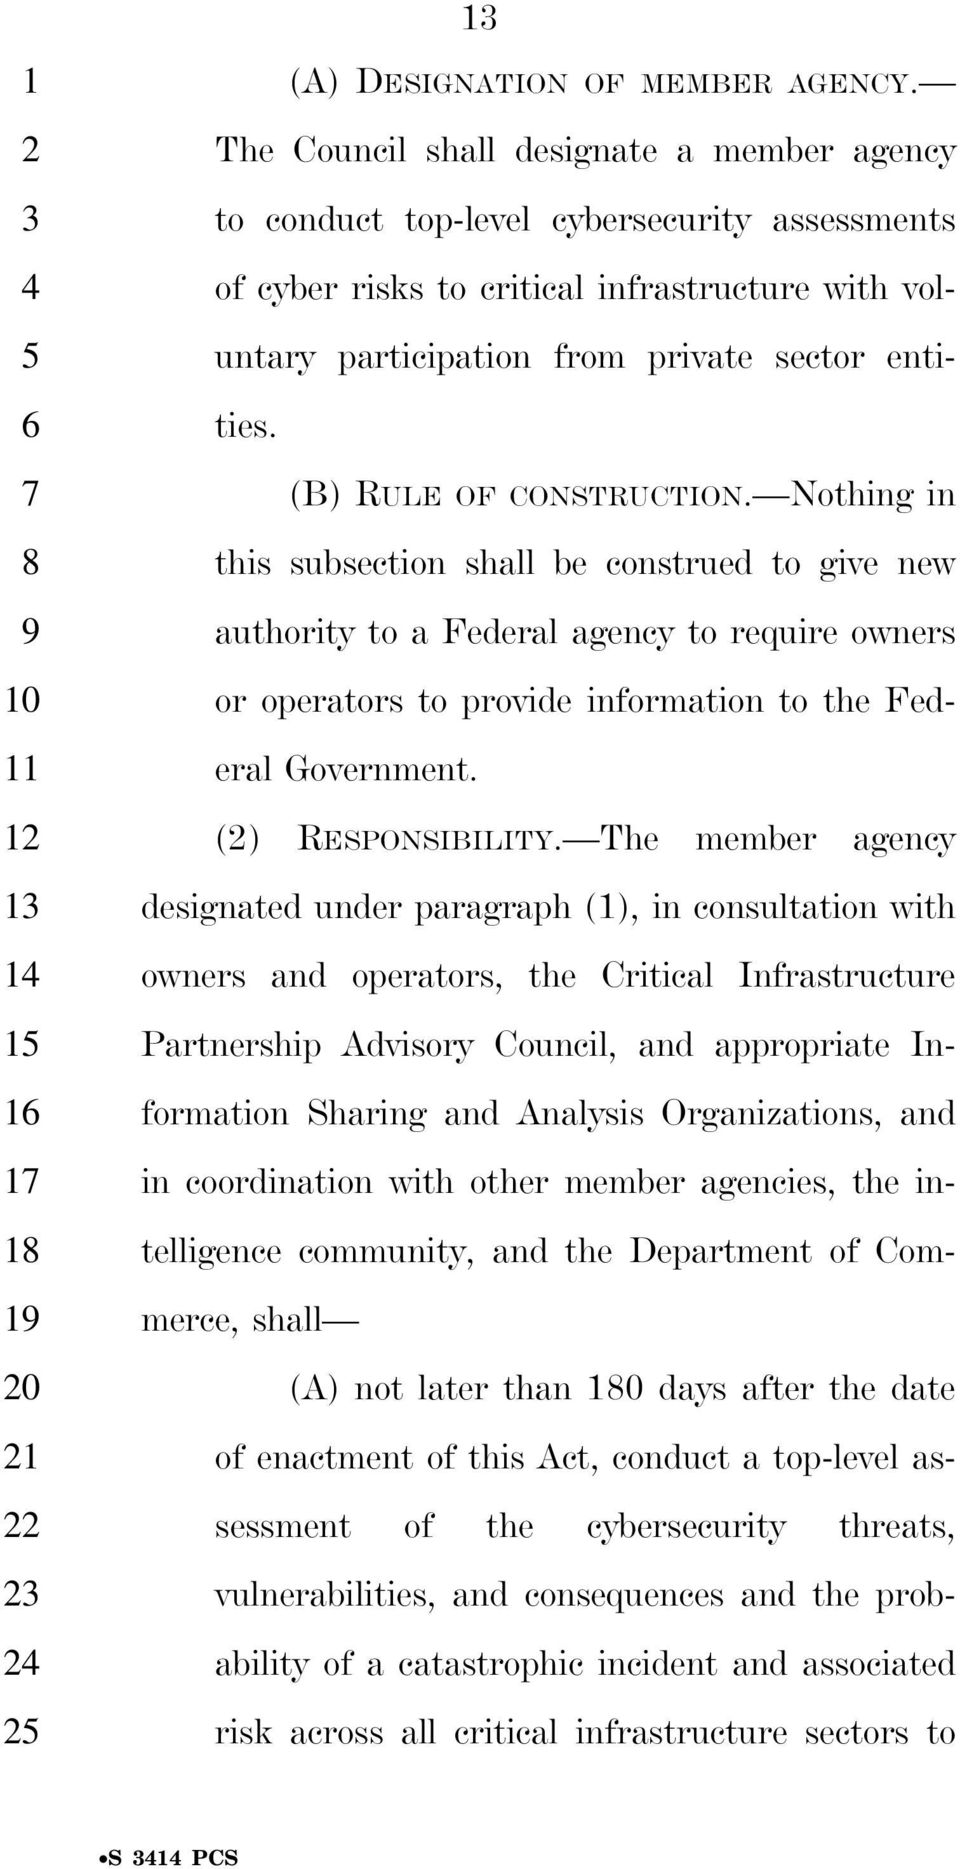 (B) RULE OF CONSTRUCTION. Nothing in this subsection shall be construed to give new authority to a Federal agency to require owners or operators to provide information to the Federal Government.